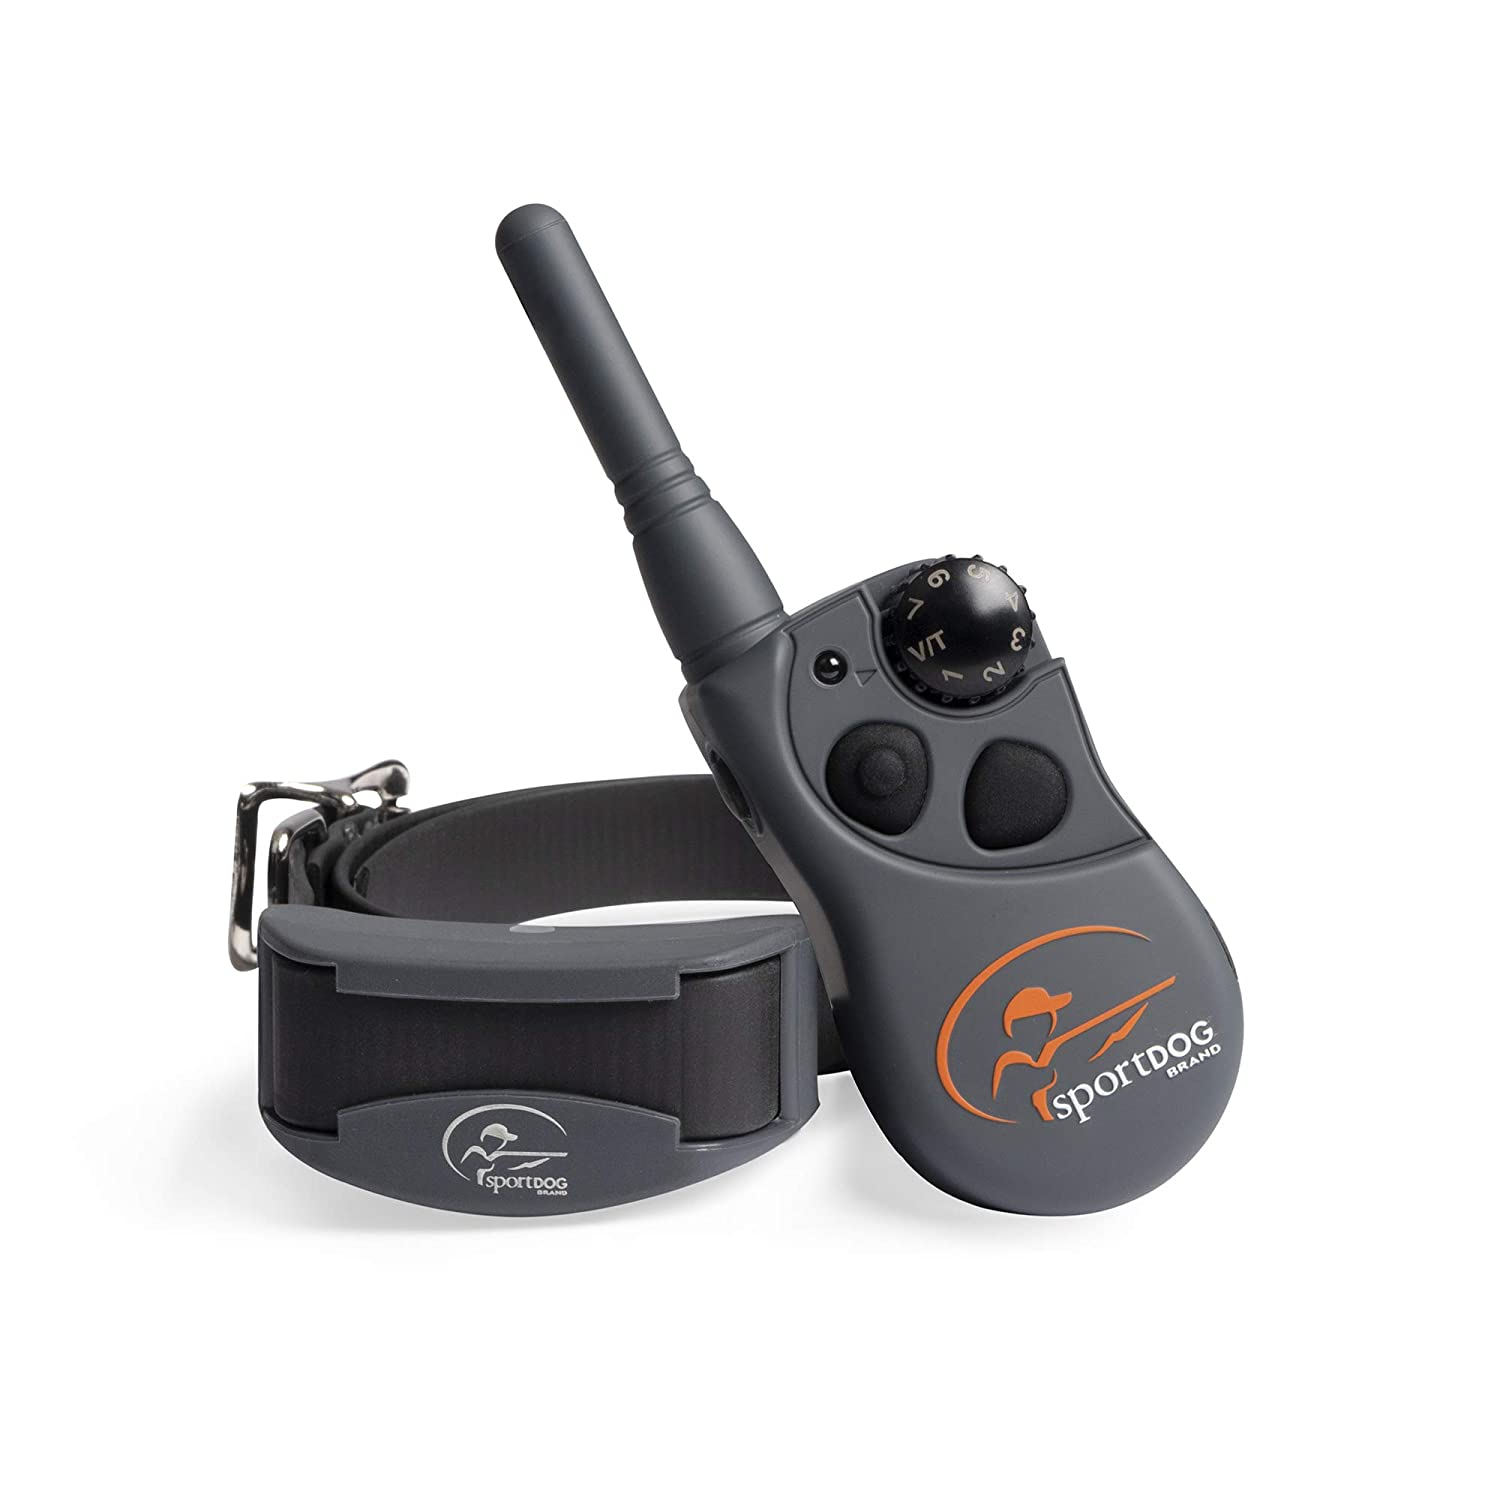 SportDOG Brand 425 Remote Trainers – 500 Yard Range E-Collar with Shock, Vibrate and Tone – Waterproof, Rechargeable – Including New X-Series